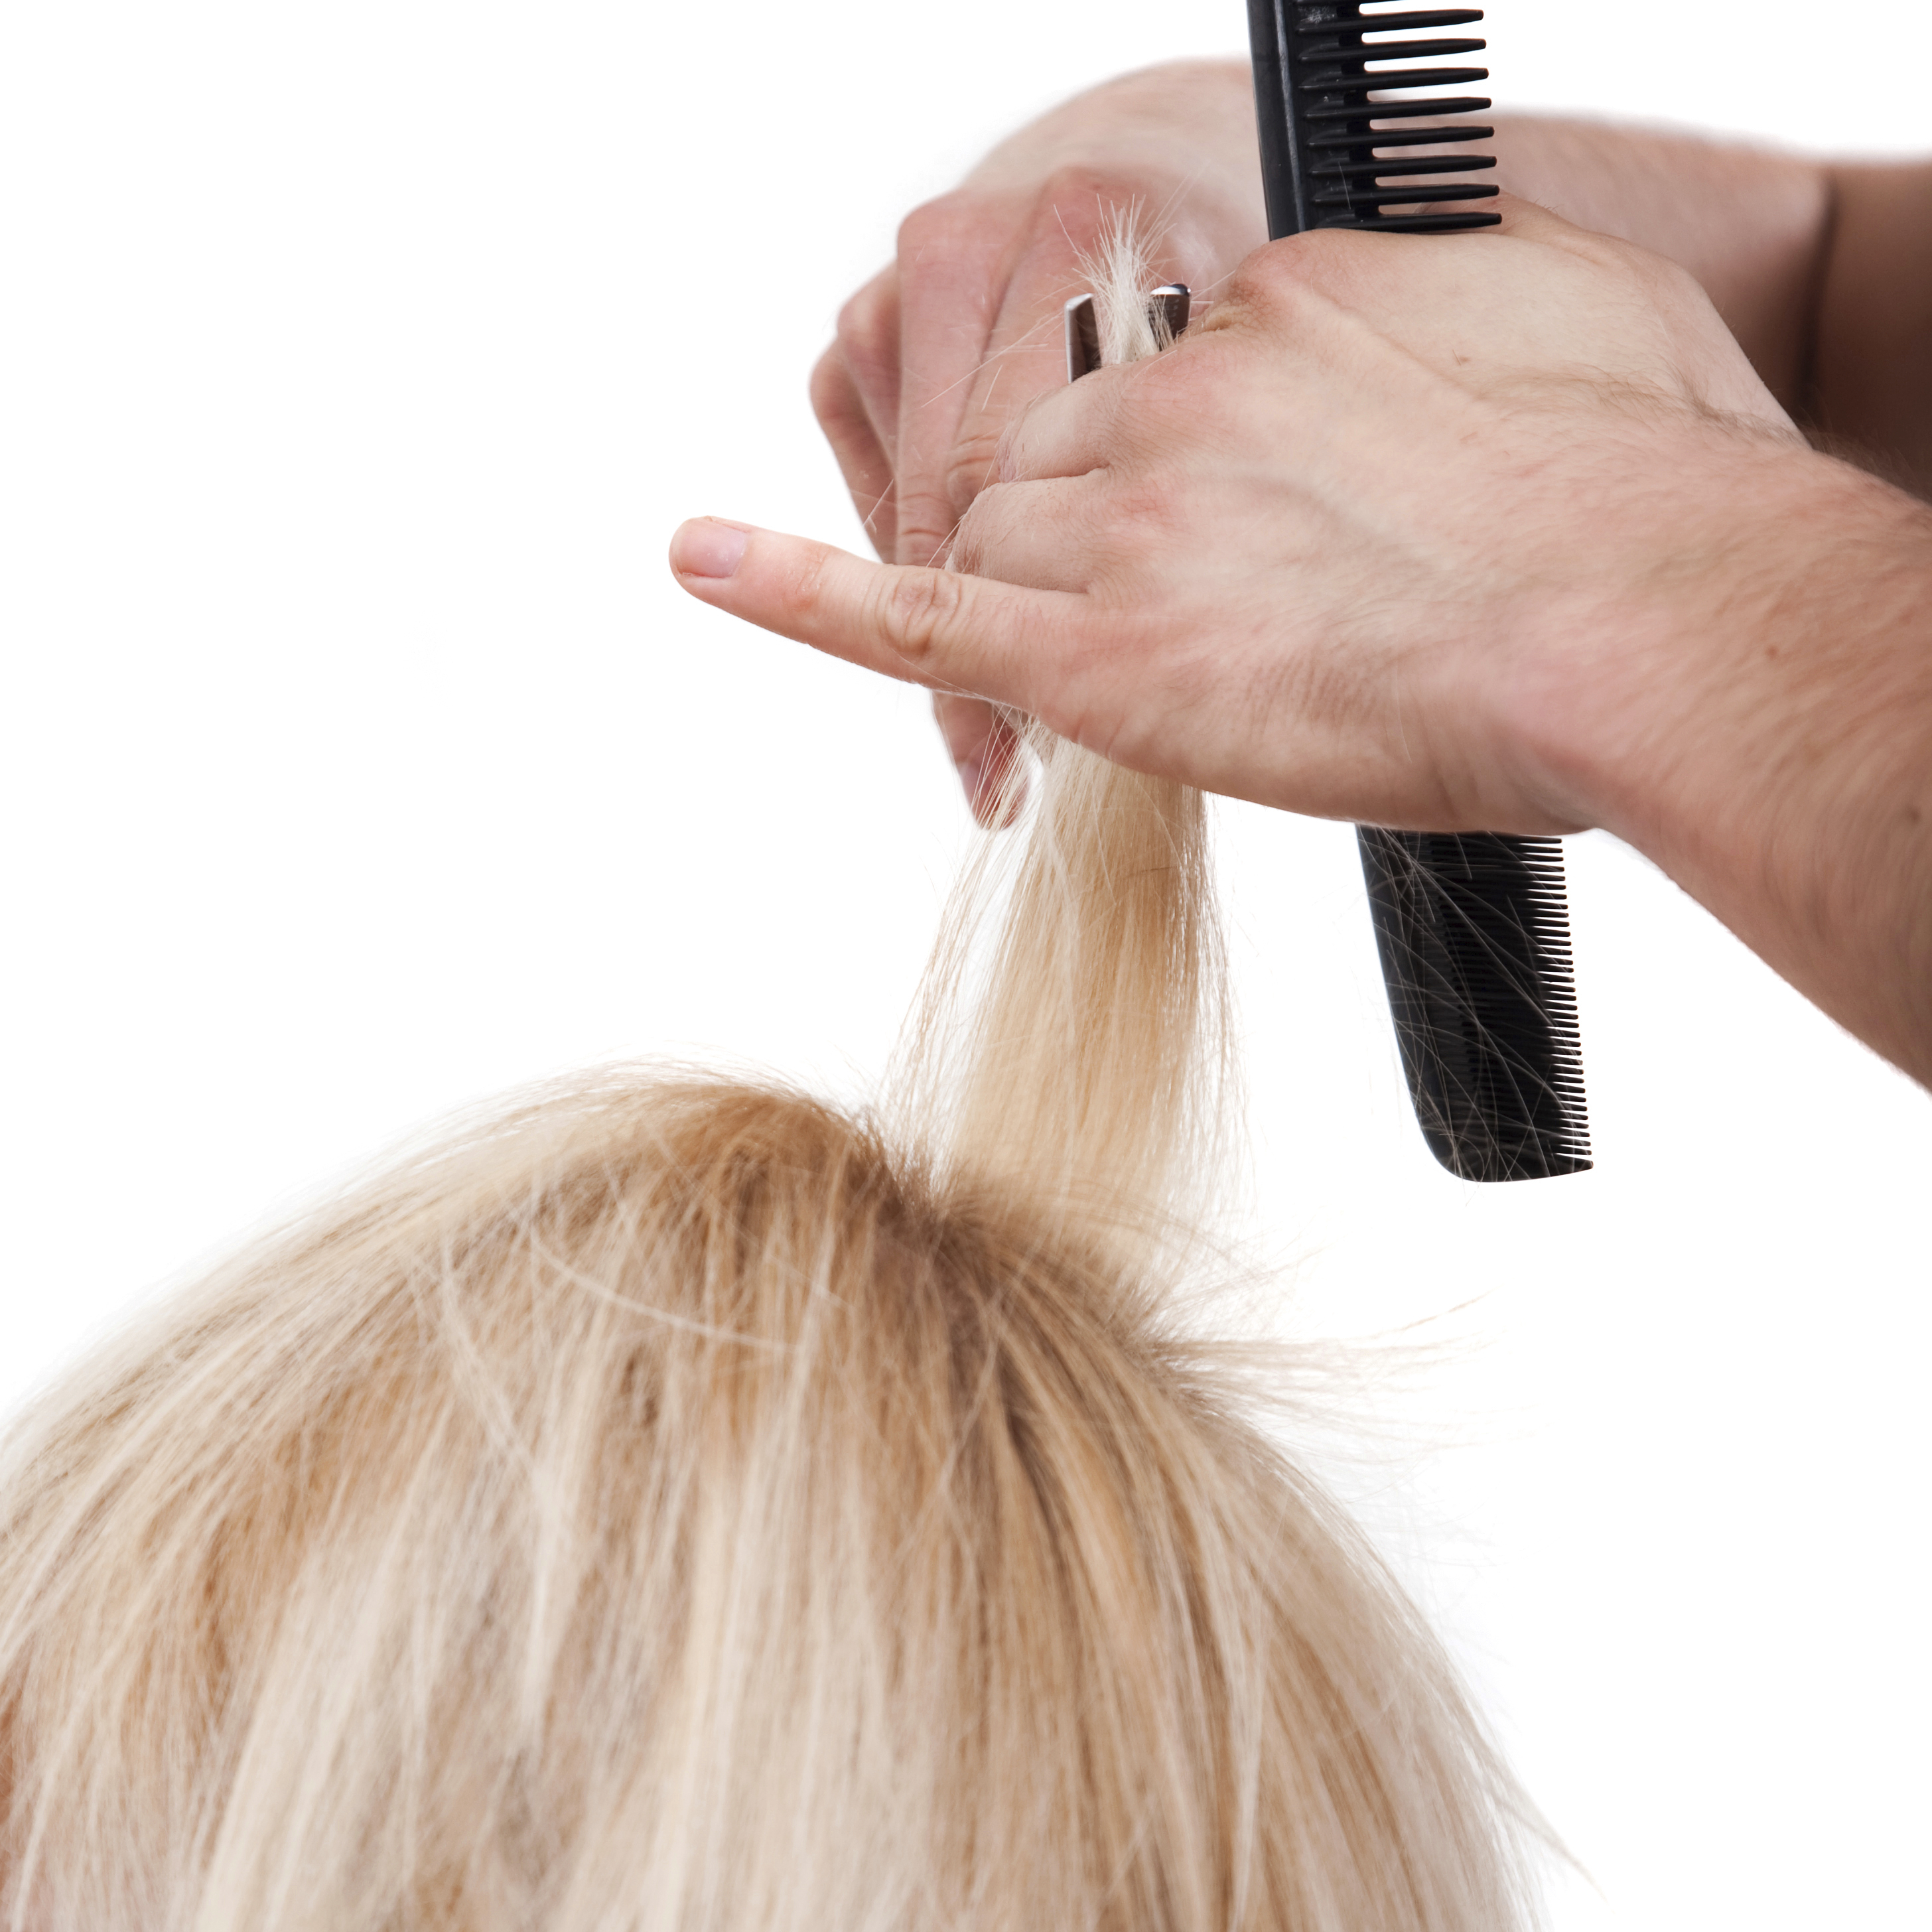 The Invisible Haircut The Anti Trend Hair Trimming Technique Spafinder